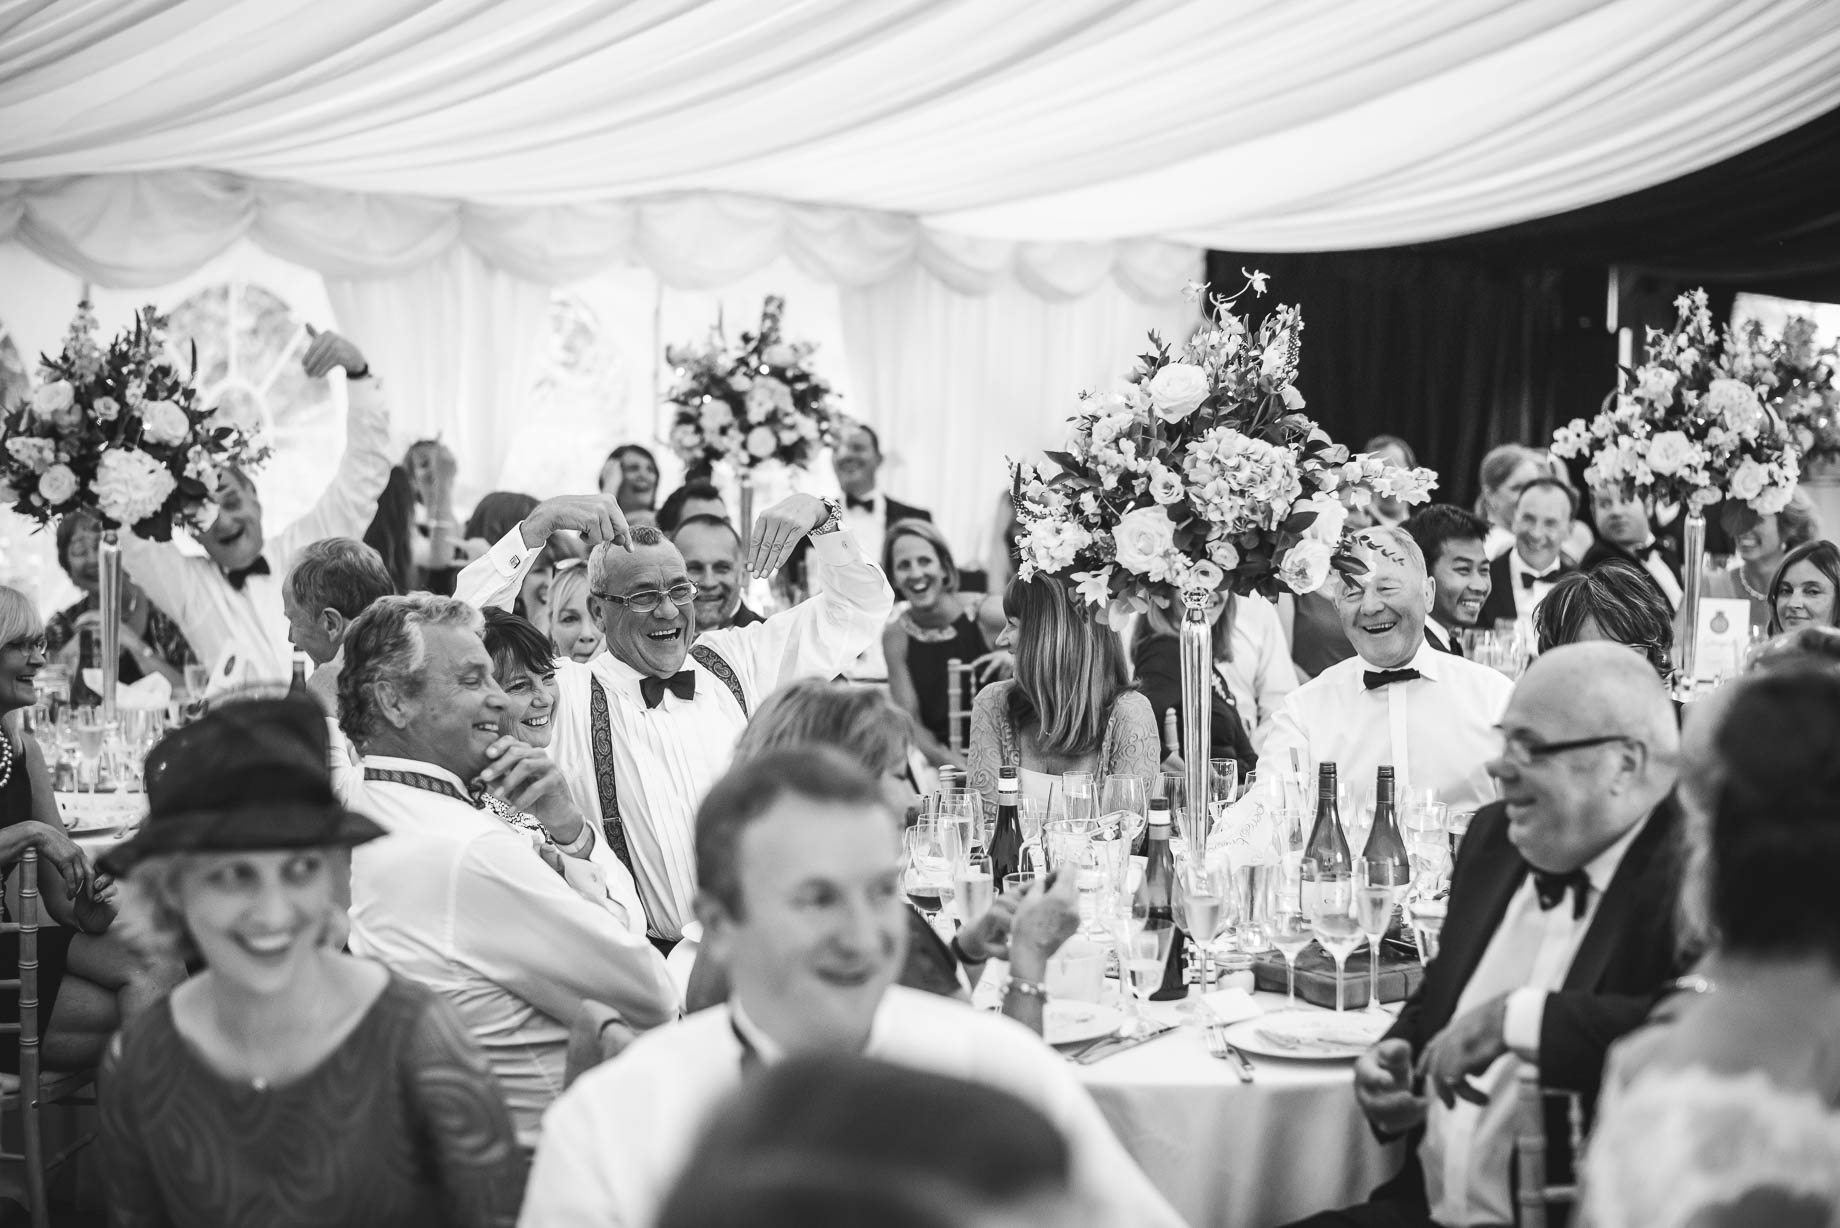 Hampshire wedding photography - Emily and Rob - Guy Collier Photography (159 of 192)